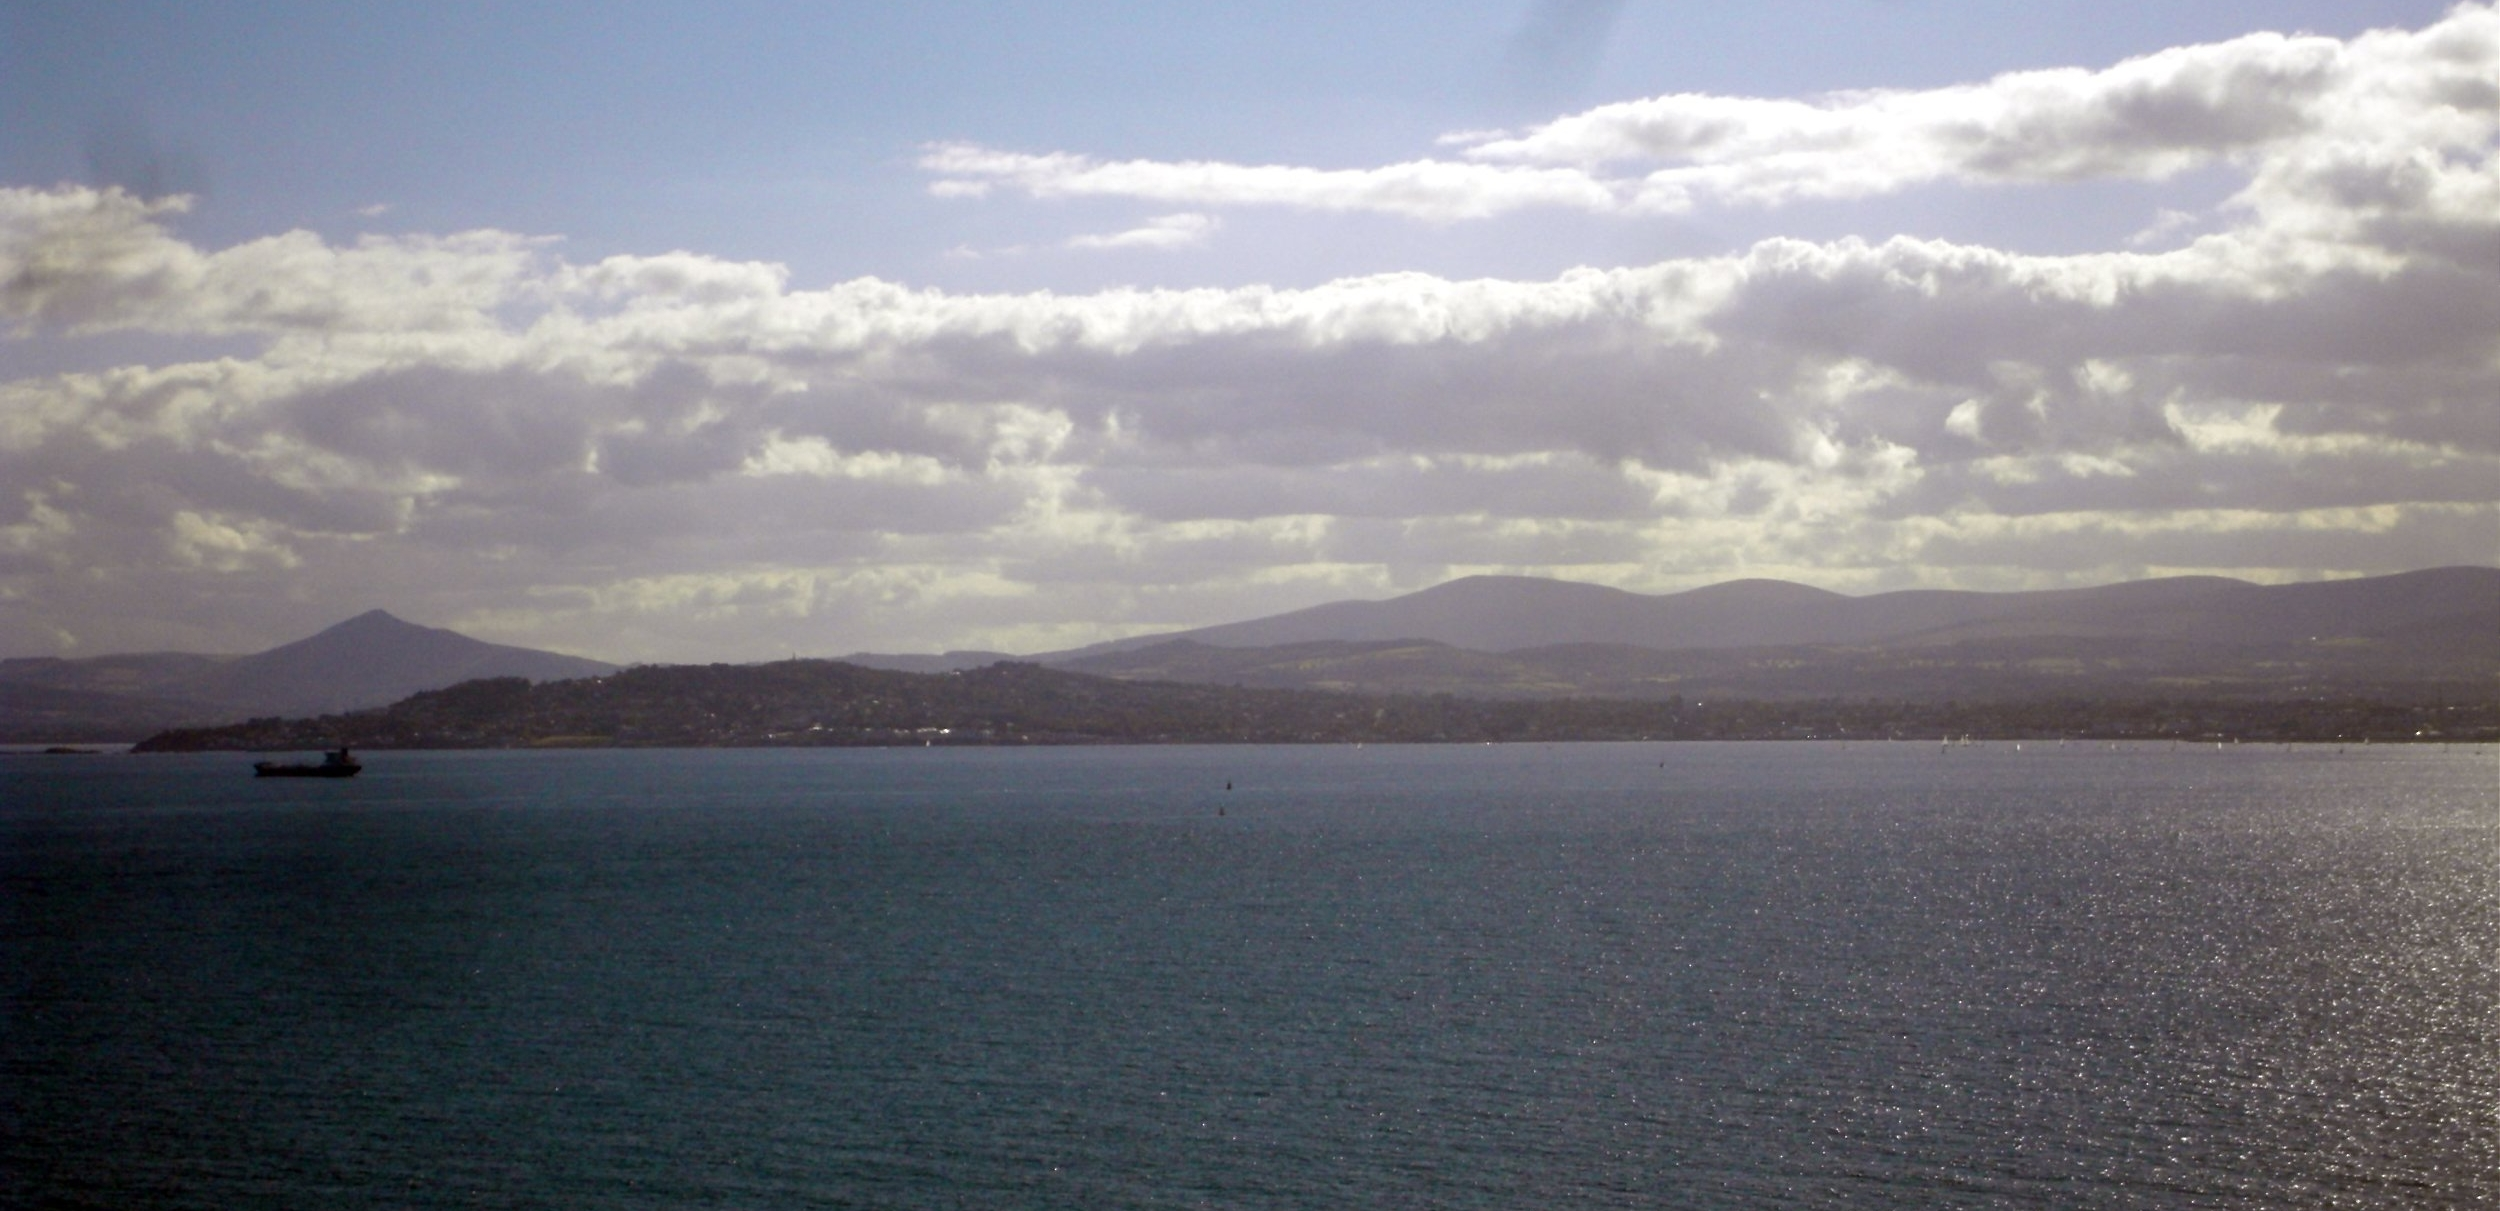 The South Dublin Coastline; Dalkey Island visible on the extreme left.